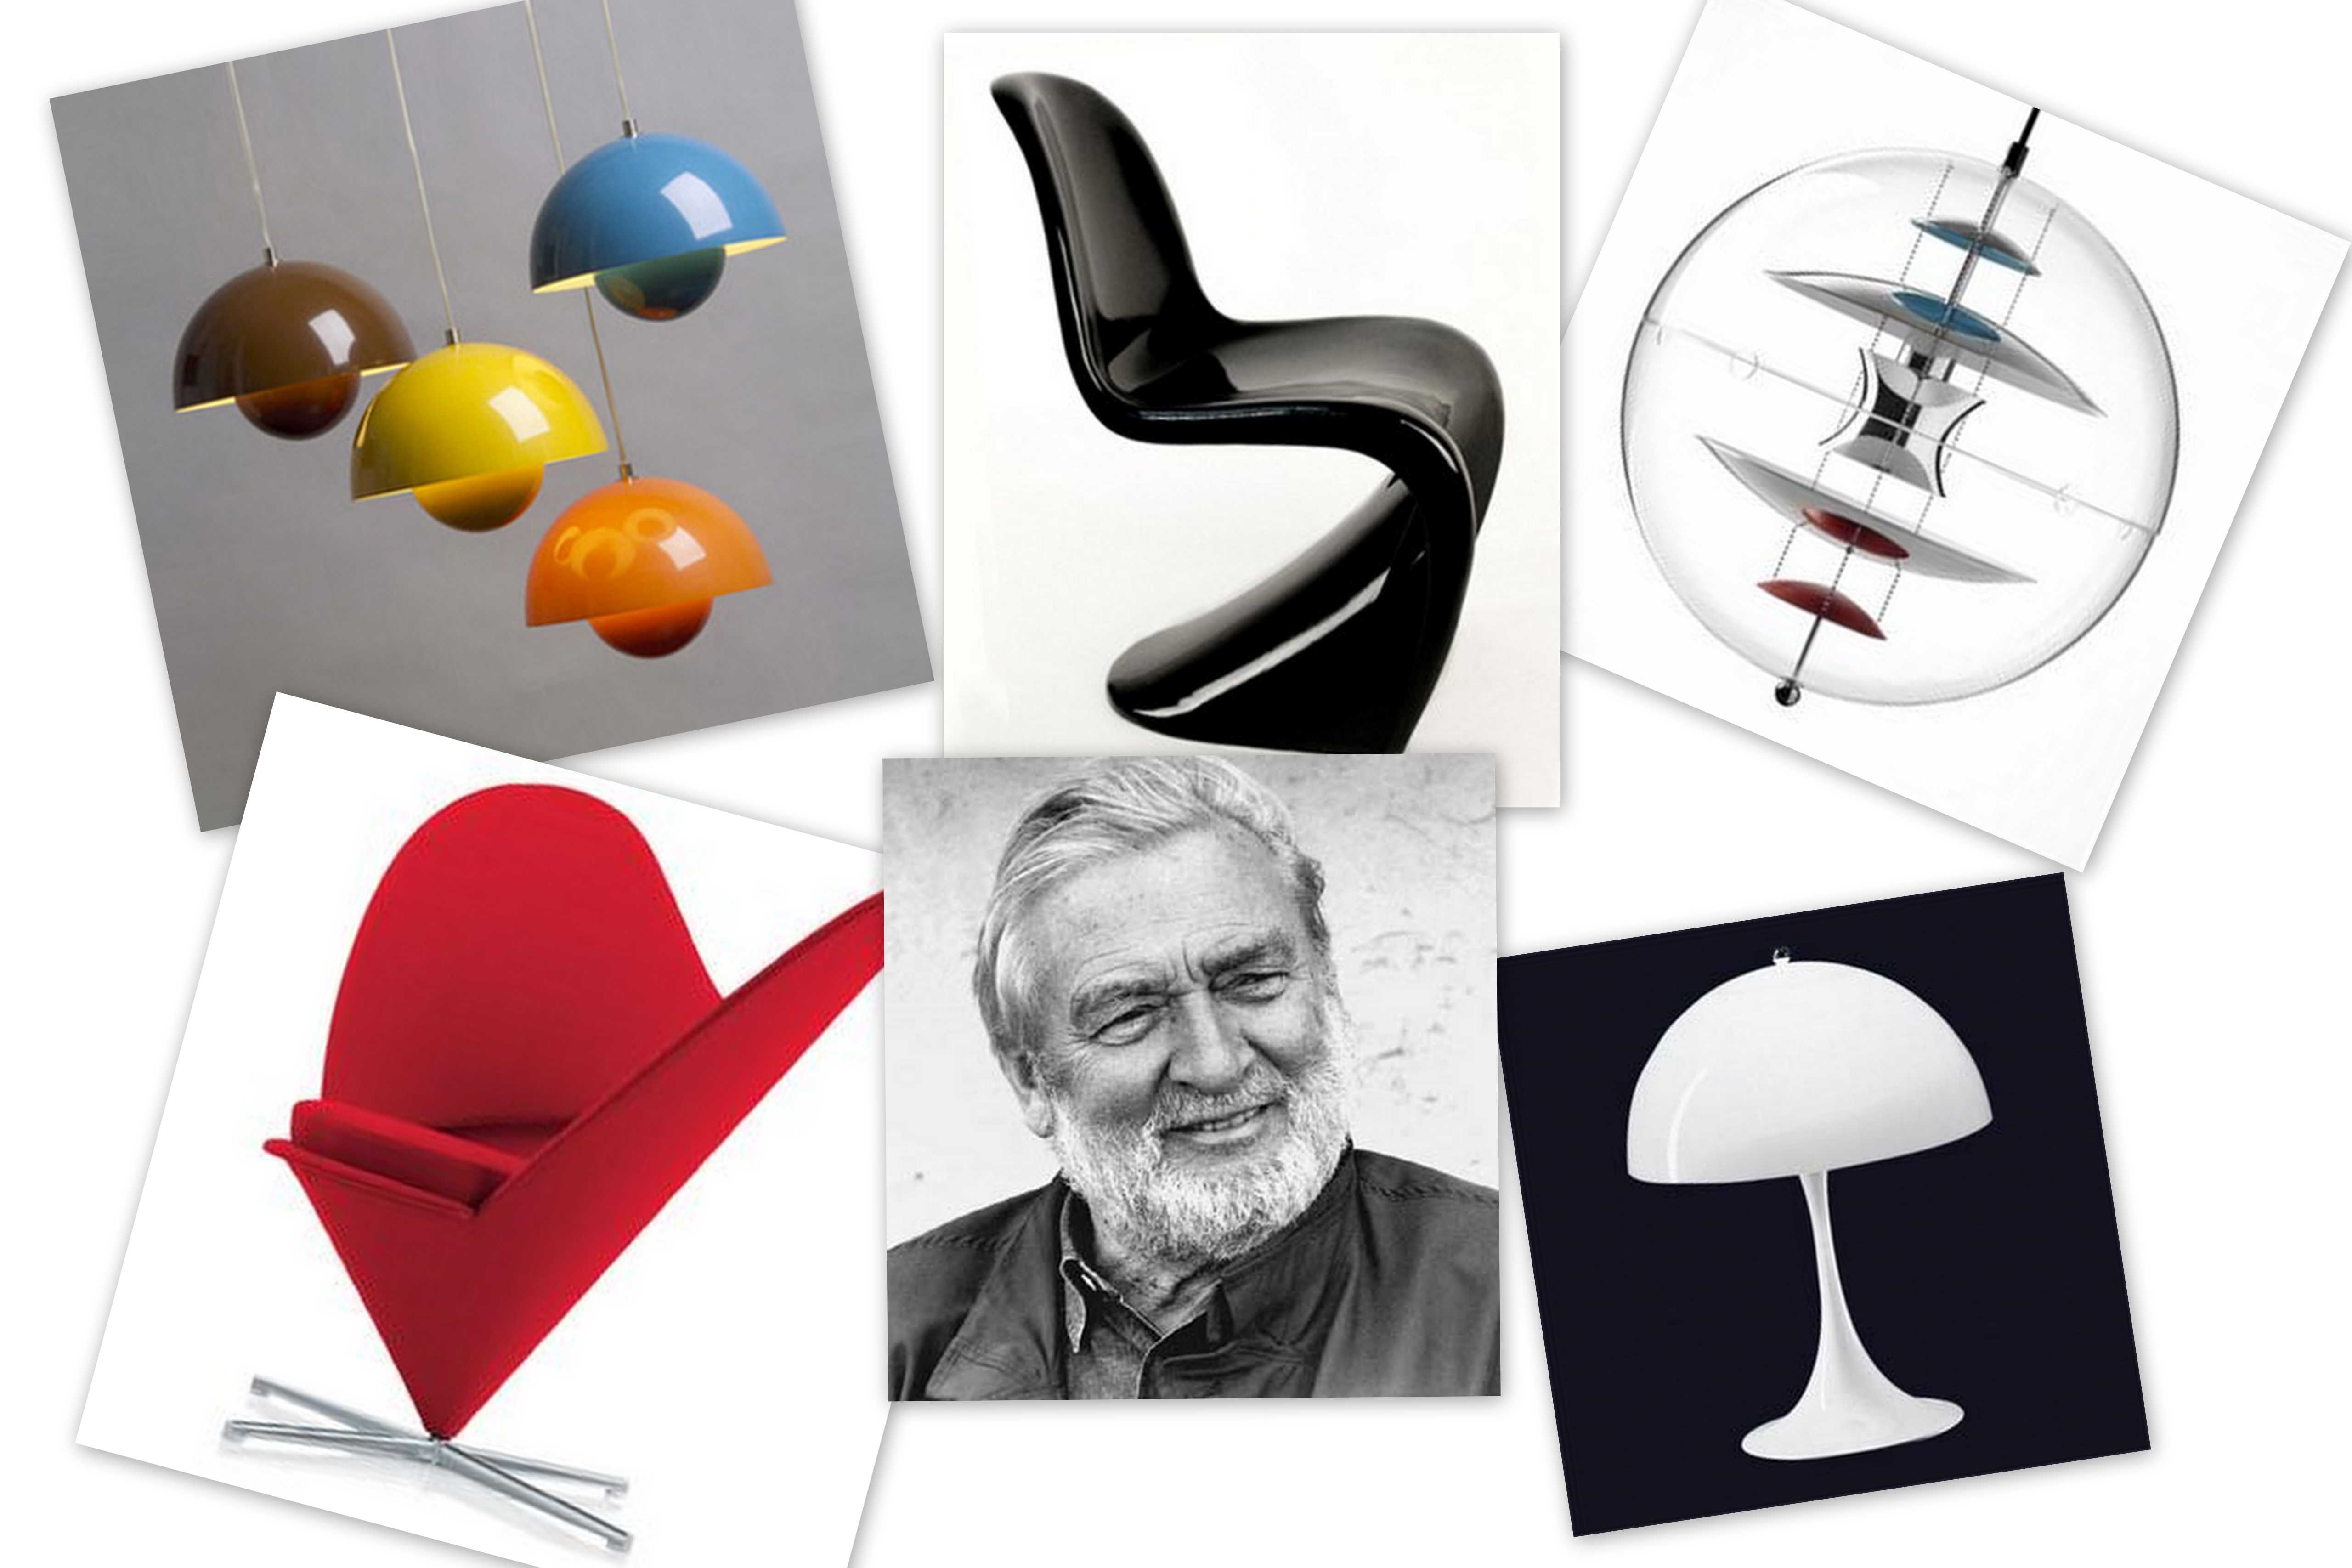 1000 images about designer on pinterest philippe starck for Panton chair imitat